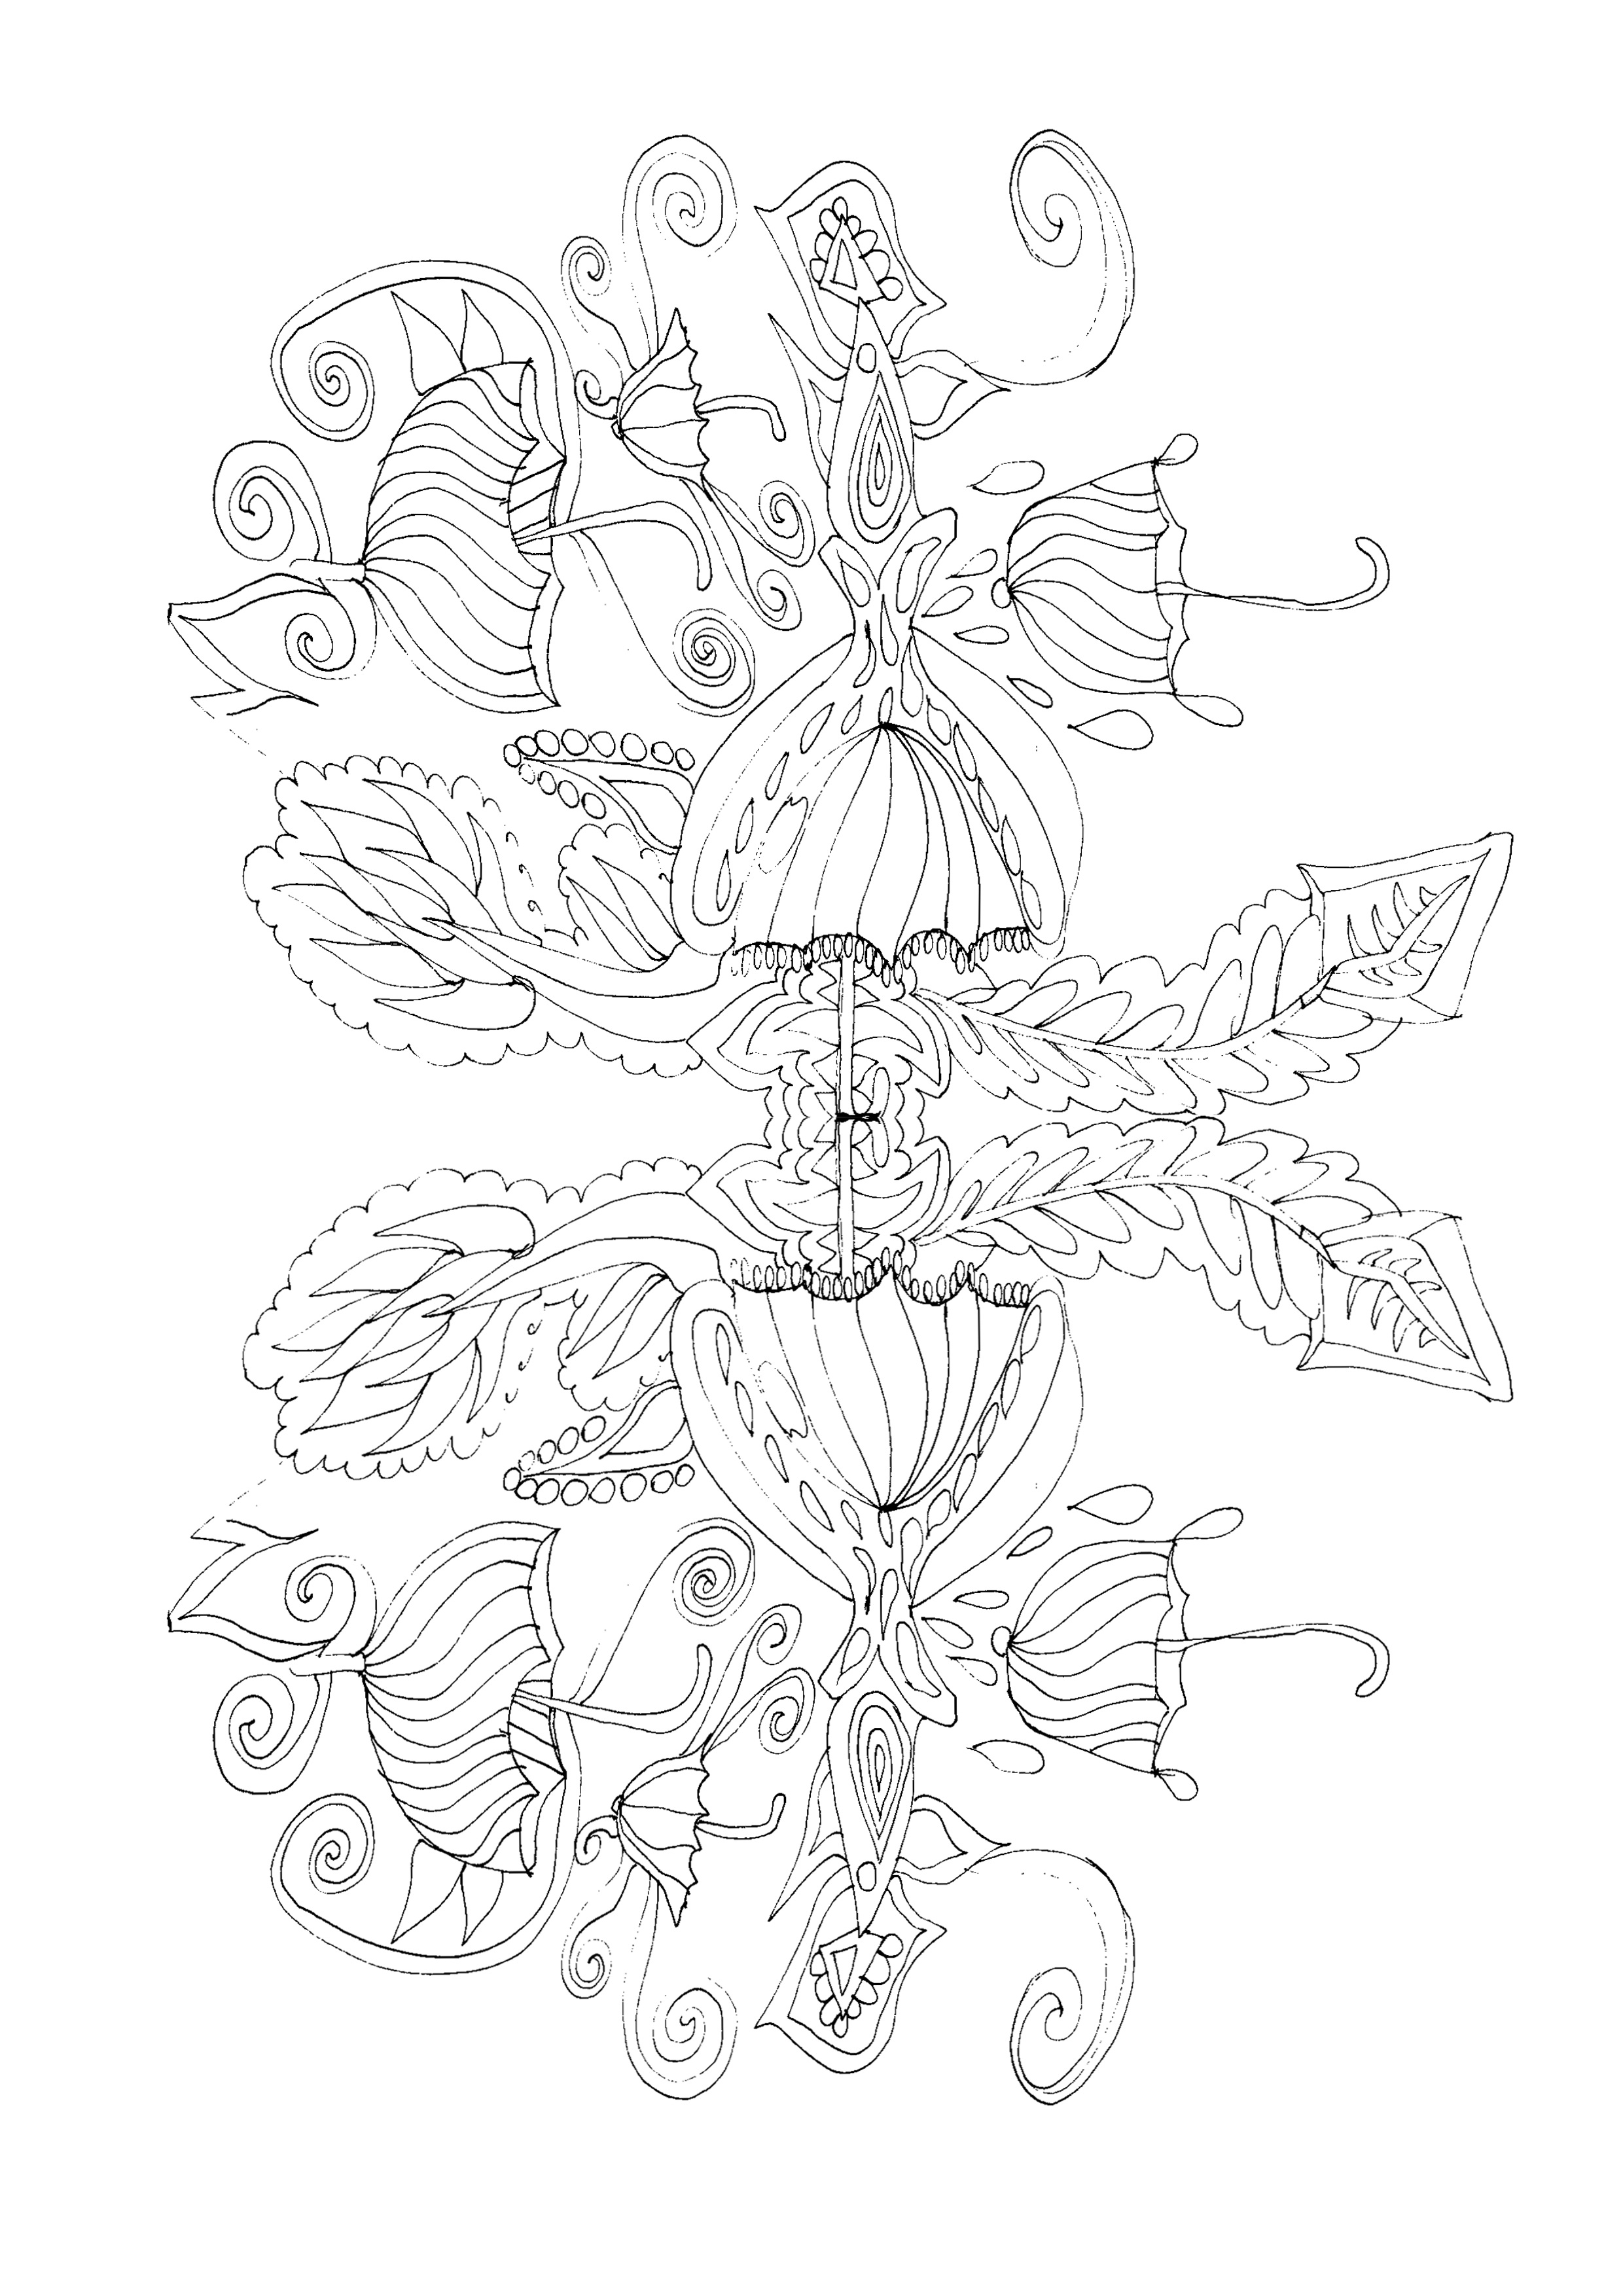 Free Coloring Book Page – 0237